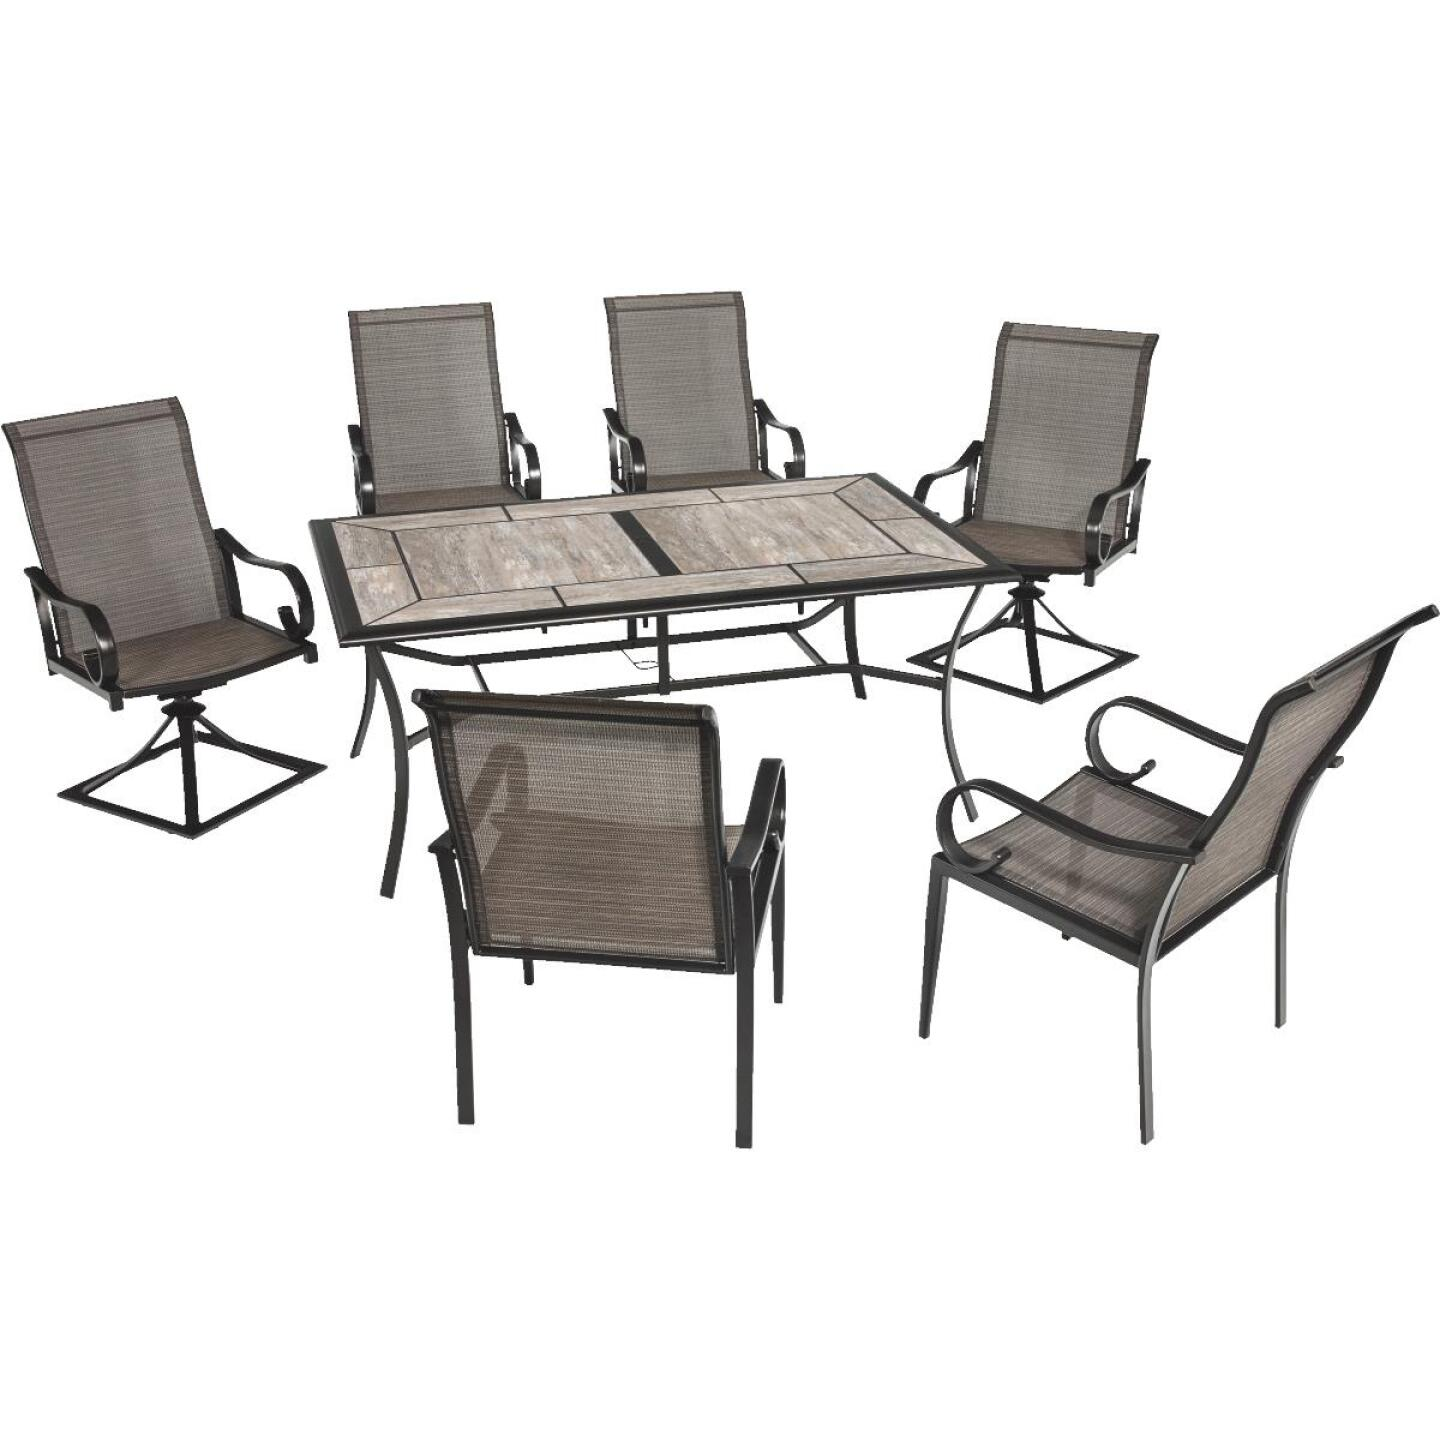 Outdoor Expressions Berkshire 7-Piece Dining Set Image 300